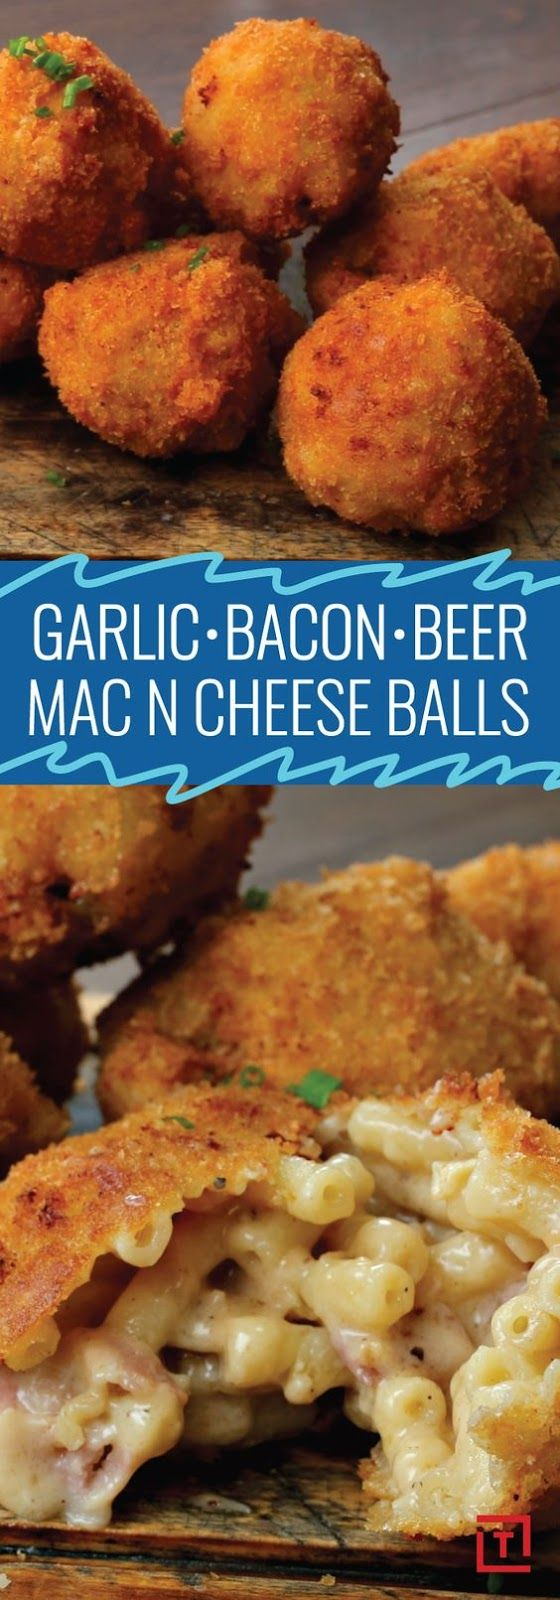 Garlic, Bacon, and Beer Mac & Cheese Balls 1 h       We at Thrillist believe that most things in life are made better by beer, including m...